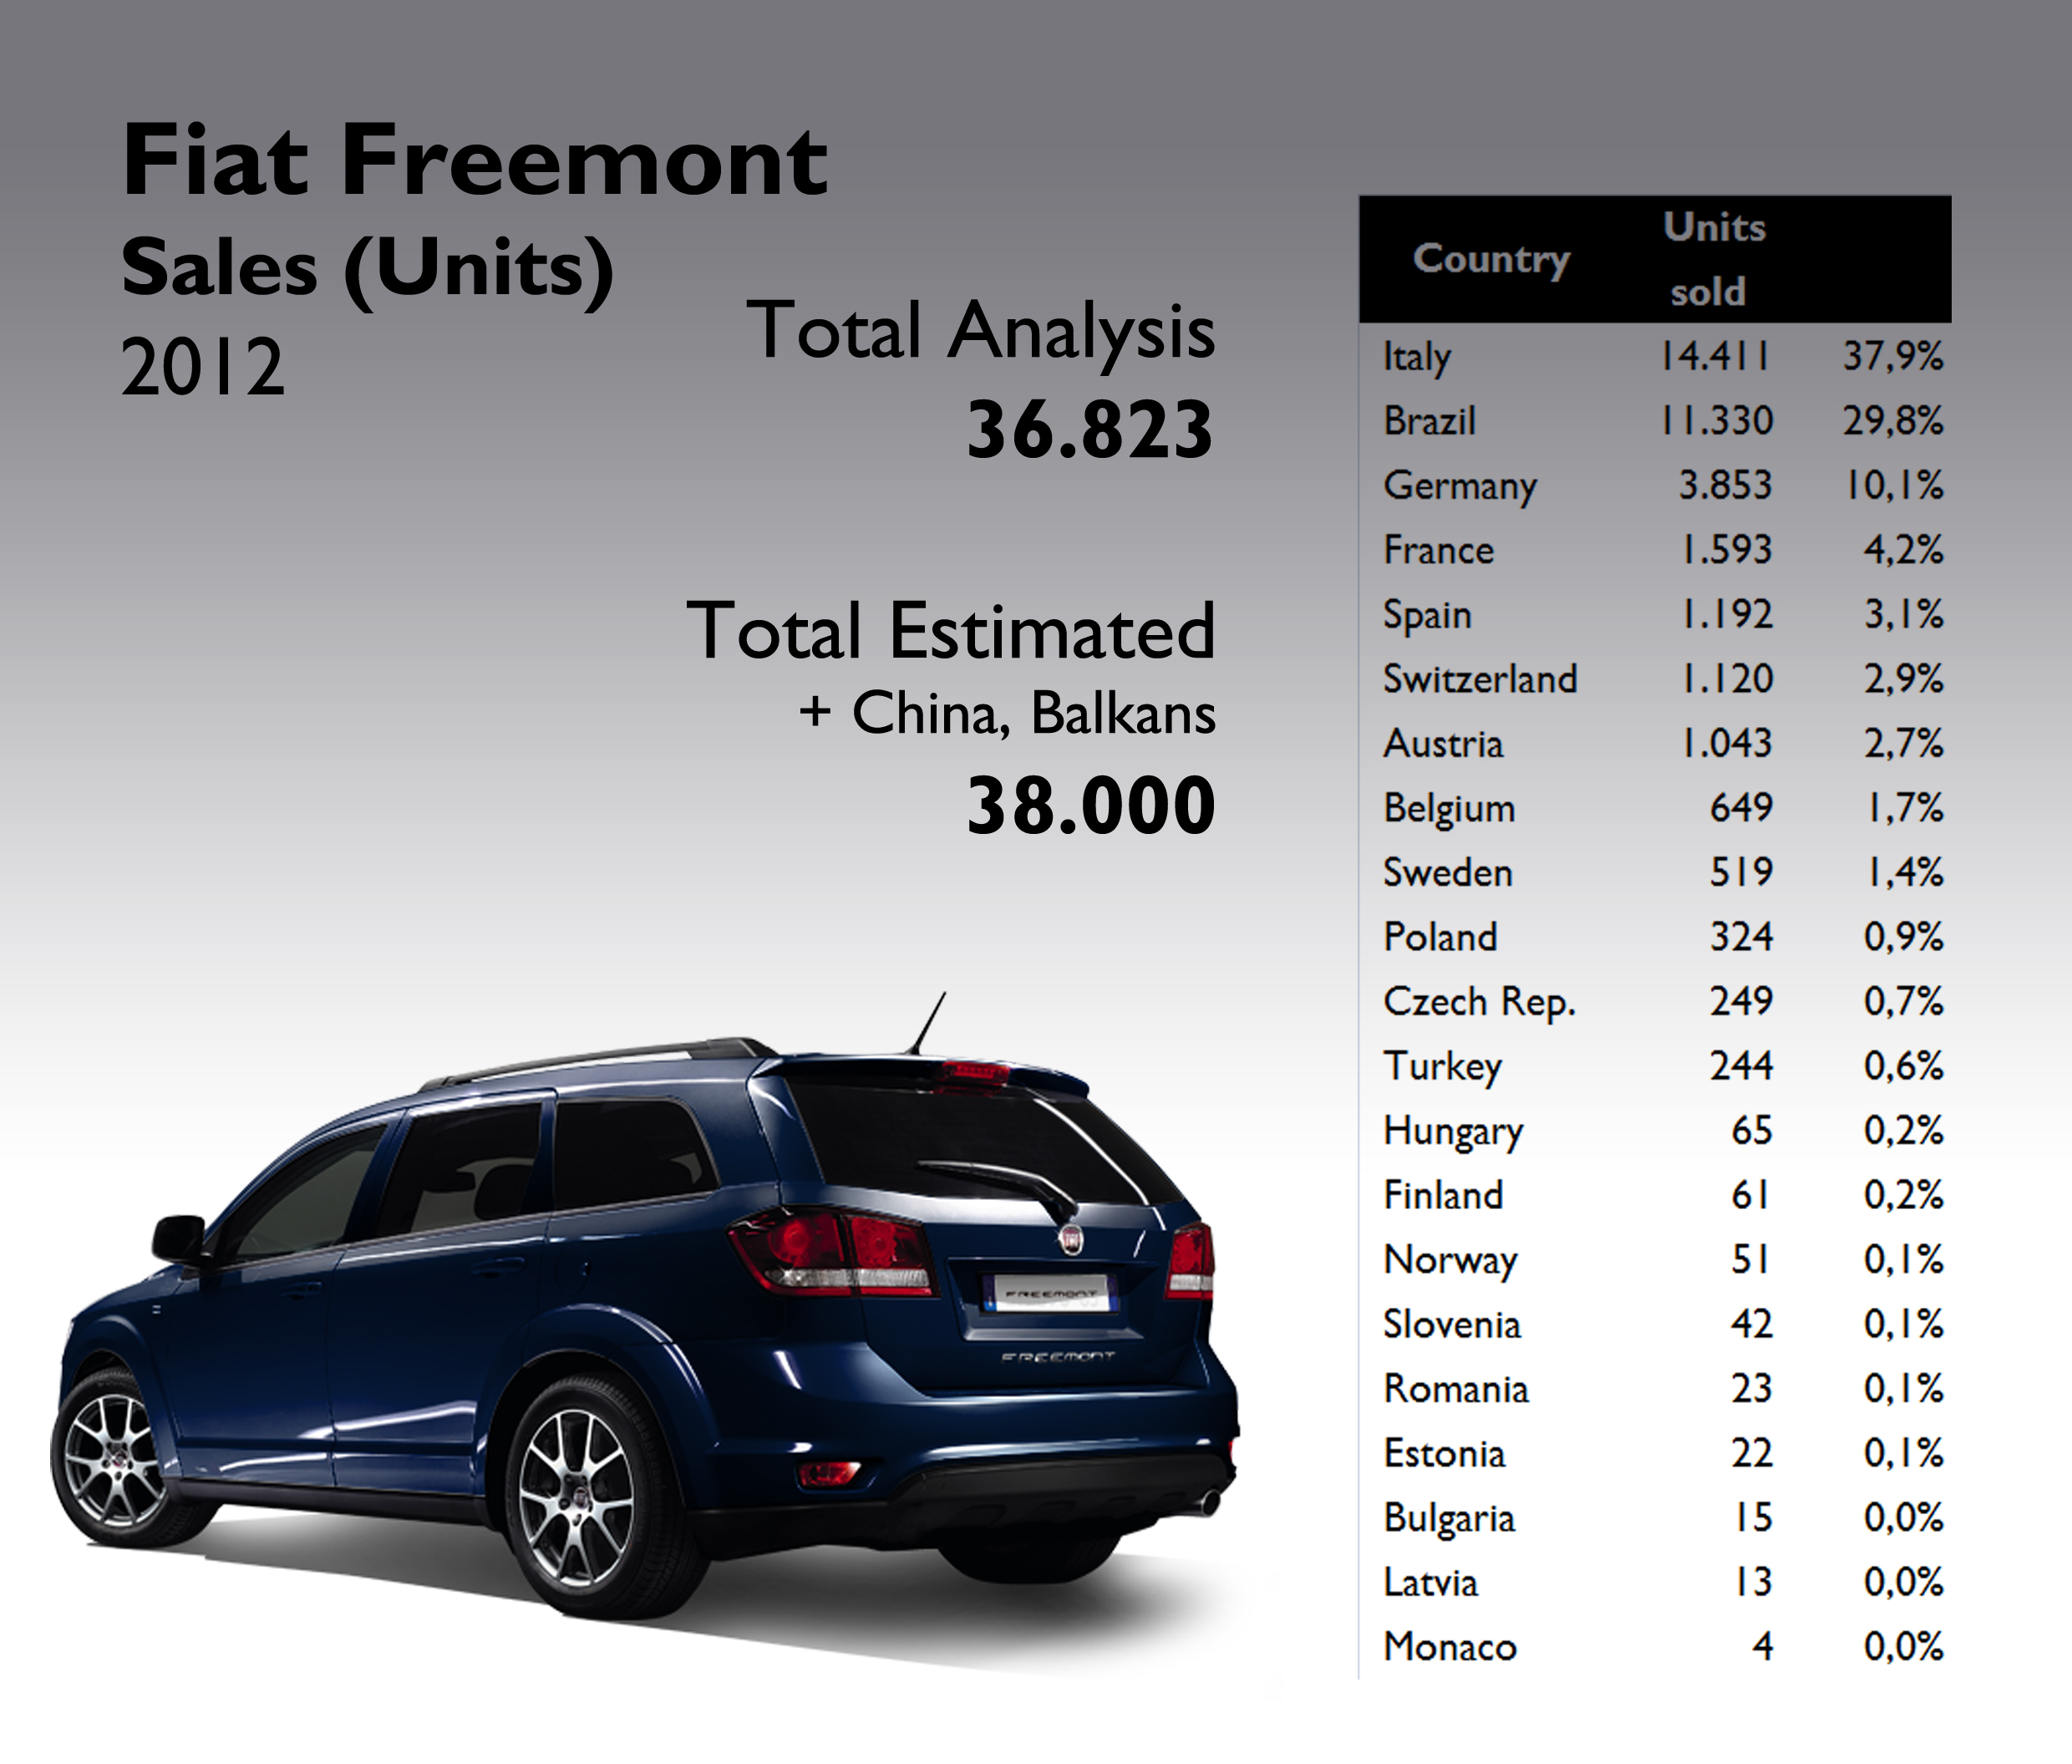 Fiat Freemont 2012 Full Year Analysis Fiat Group S World